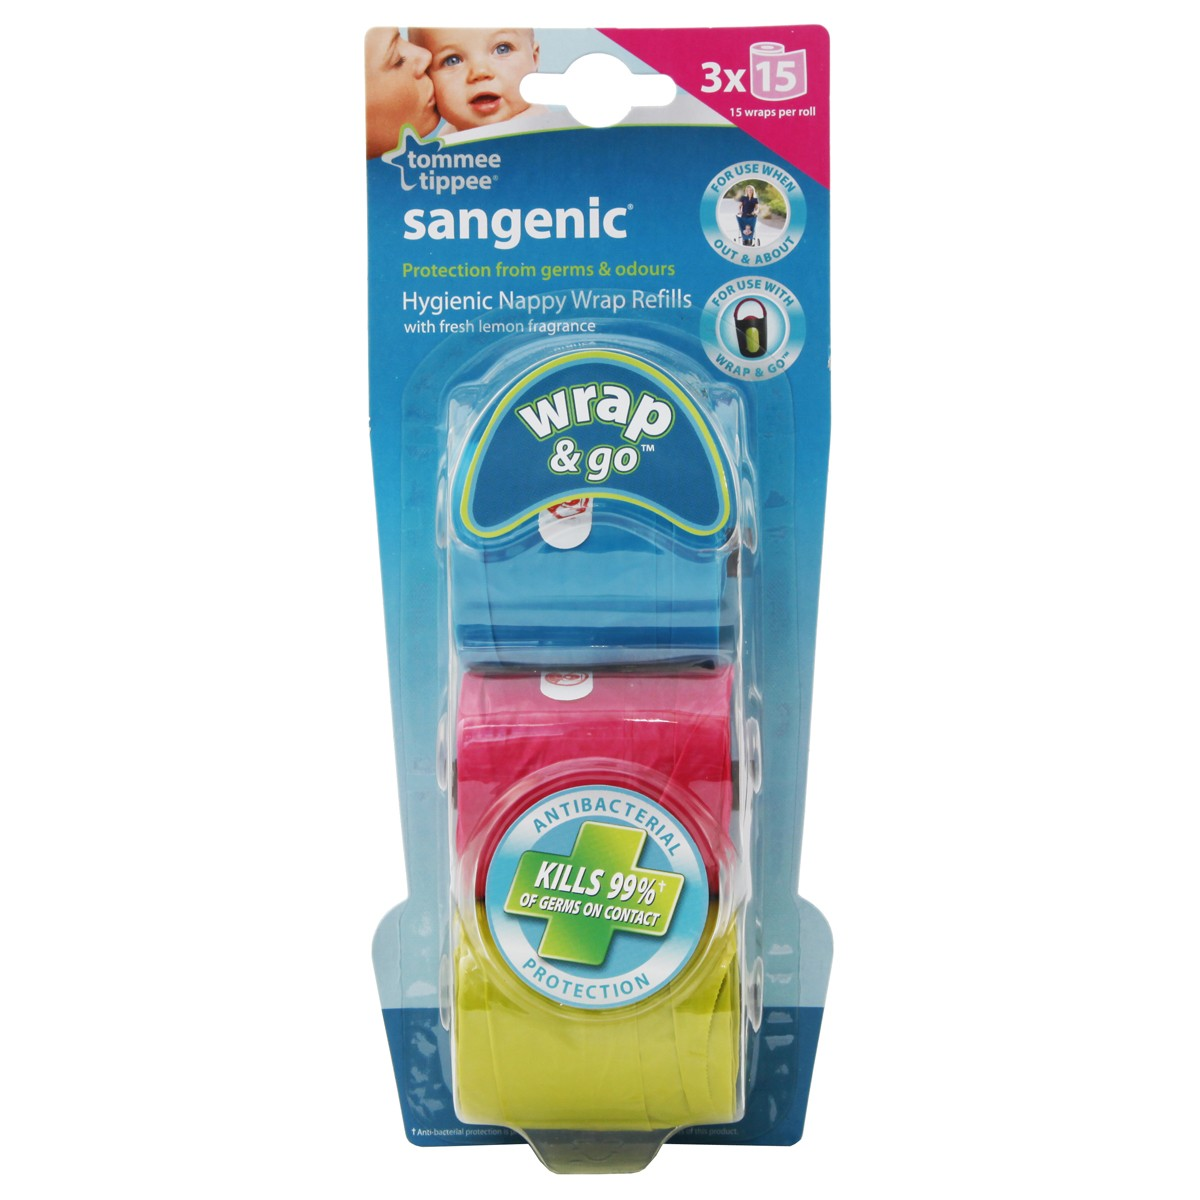 Tommee Tippee Sangenic Hygienic Nappy Wrap Refills